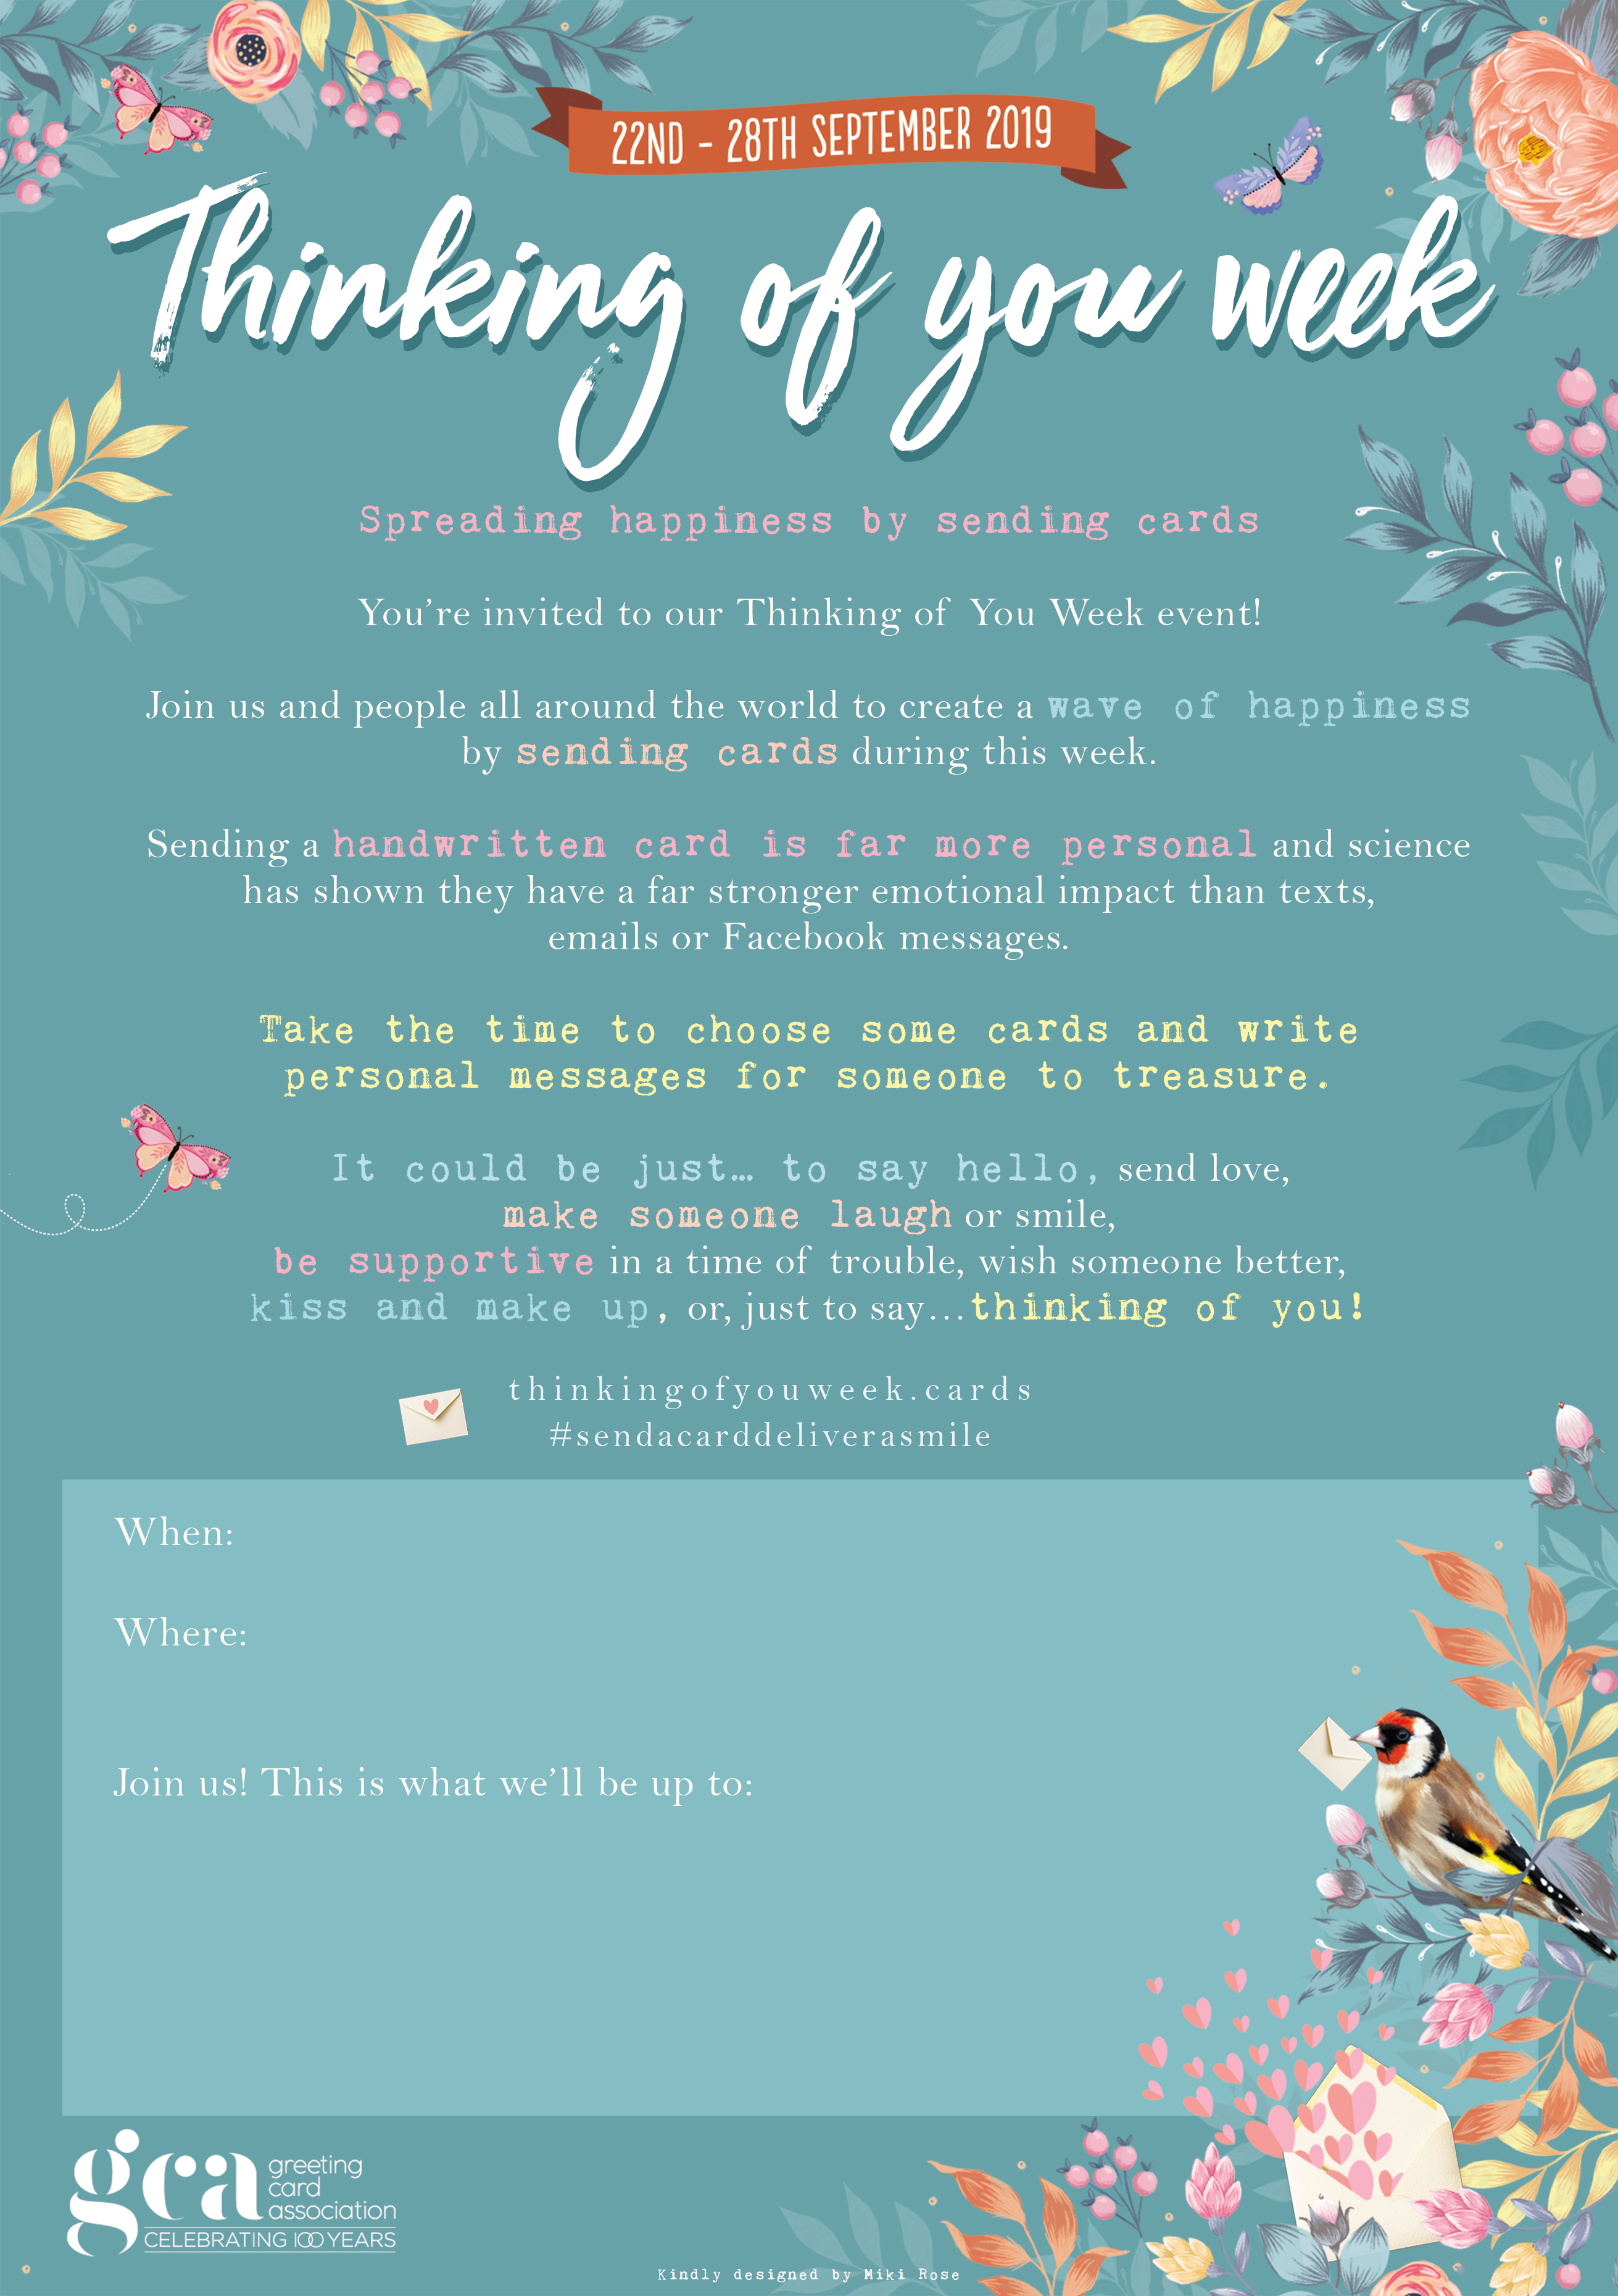 Above: The Thinking of You Week website has a number of 'tools' including a poster that can be used to publicise a card writing event.